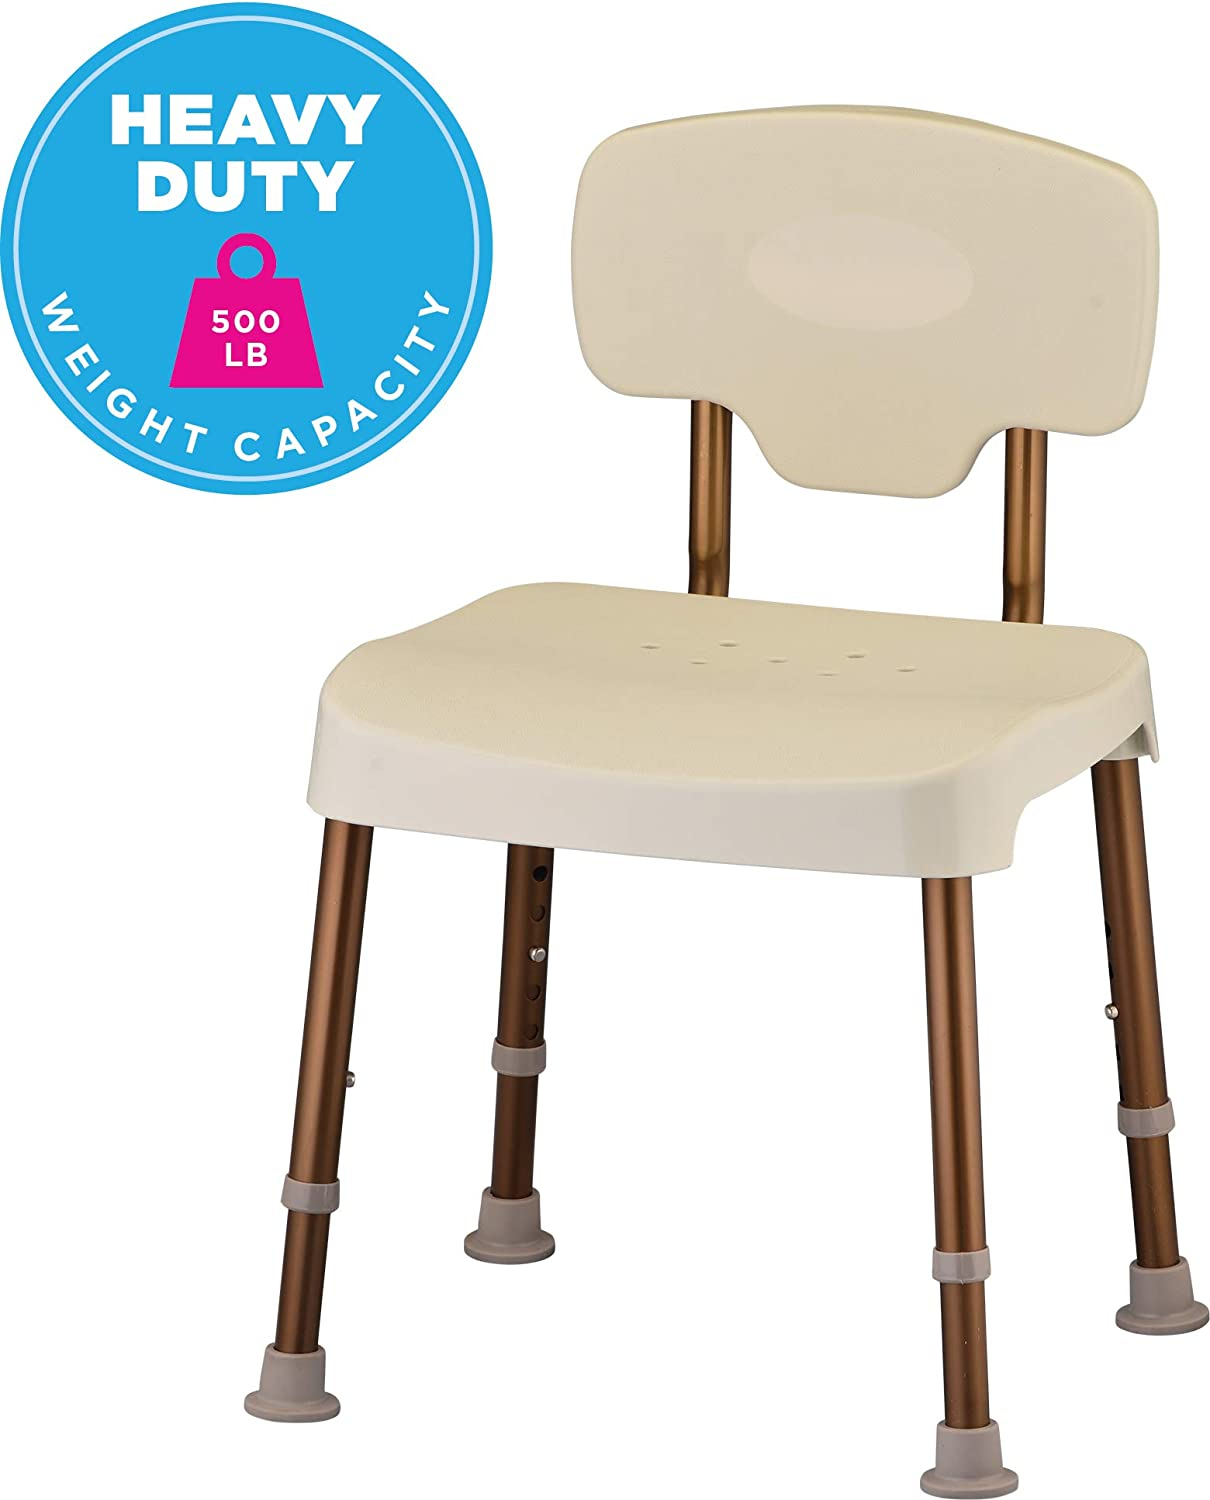 B0781VSR4L NOVA Bariatric Shower and Bath Chair with Back, Heavy Duty 500 lb. Weight Capacity, Quick & Easy Tools Free Assembly, Lightweight and Seat Height Adjustable, Almond Color Seat & Back with Bronze Frame 71Y6BjVZS1L